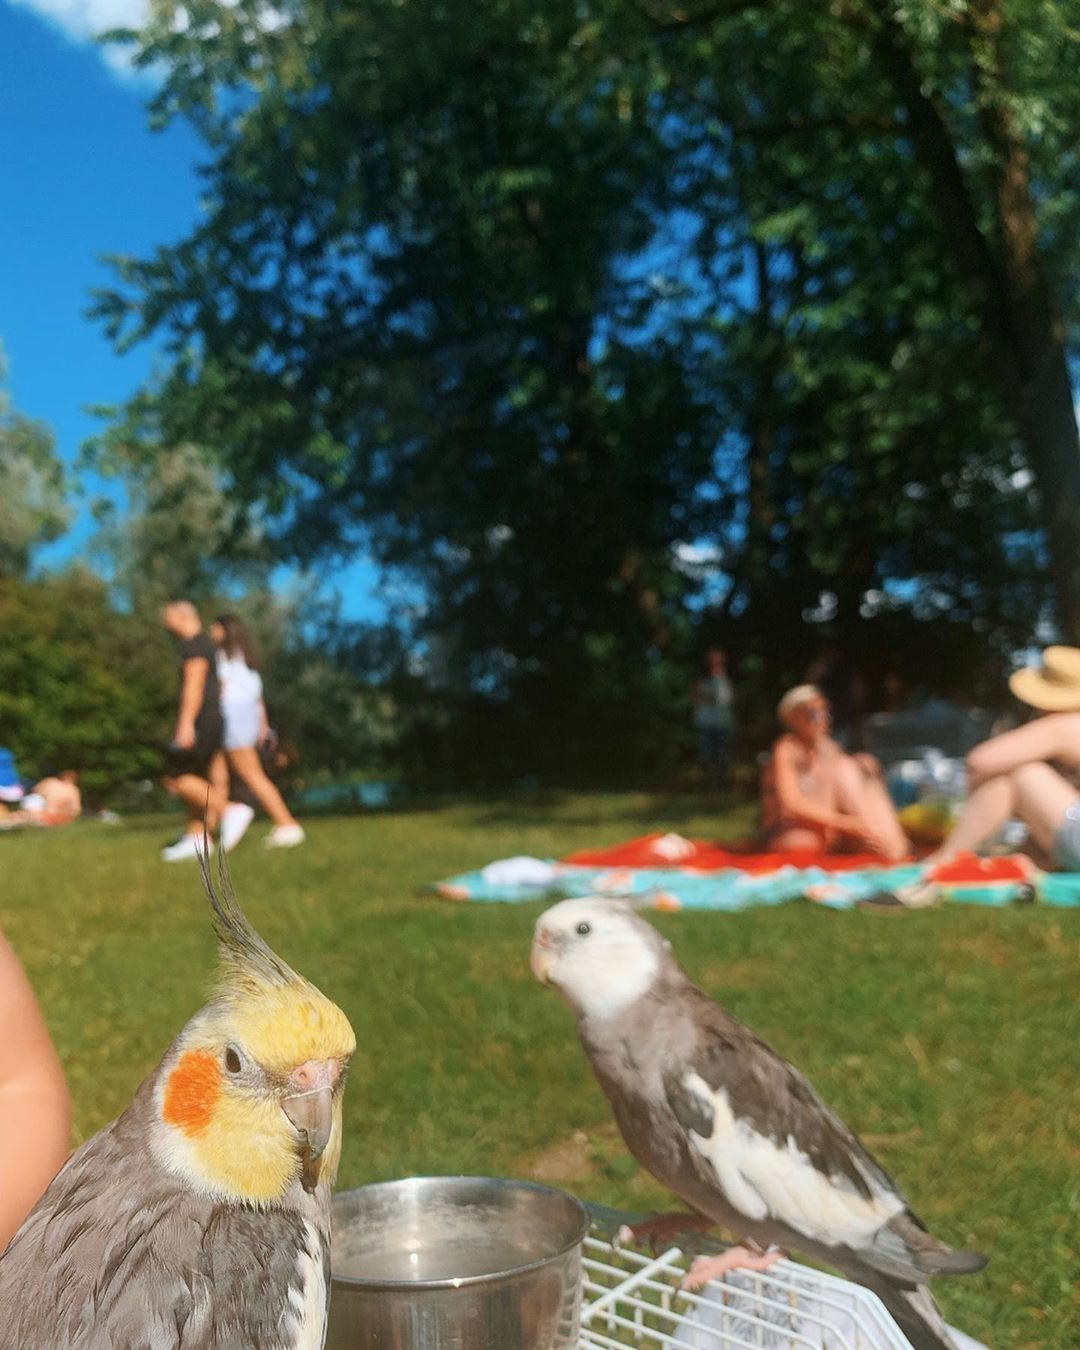 """Flappy and Penita on Instagram: """"🌤 we went for a walk yesterday, what did you do?👋😊🥰✌🏼😋#sunnyday #park #happyday #sun #weareflappyandpenita #parrotslife #parrotslover…"""""""